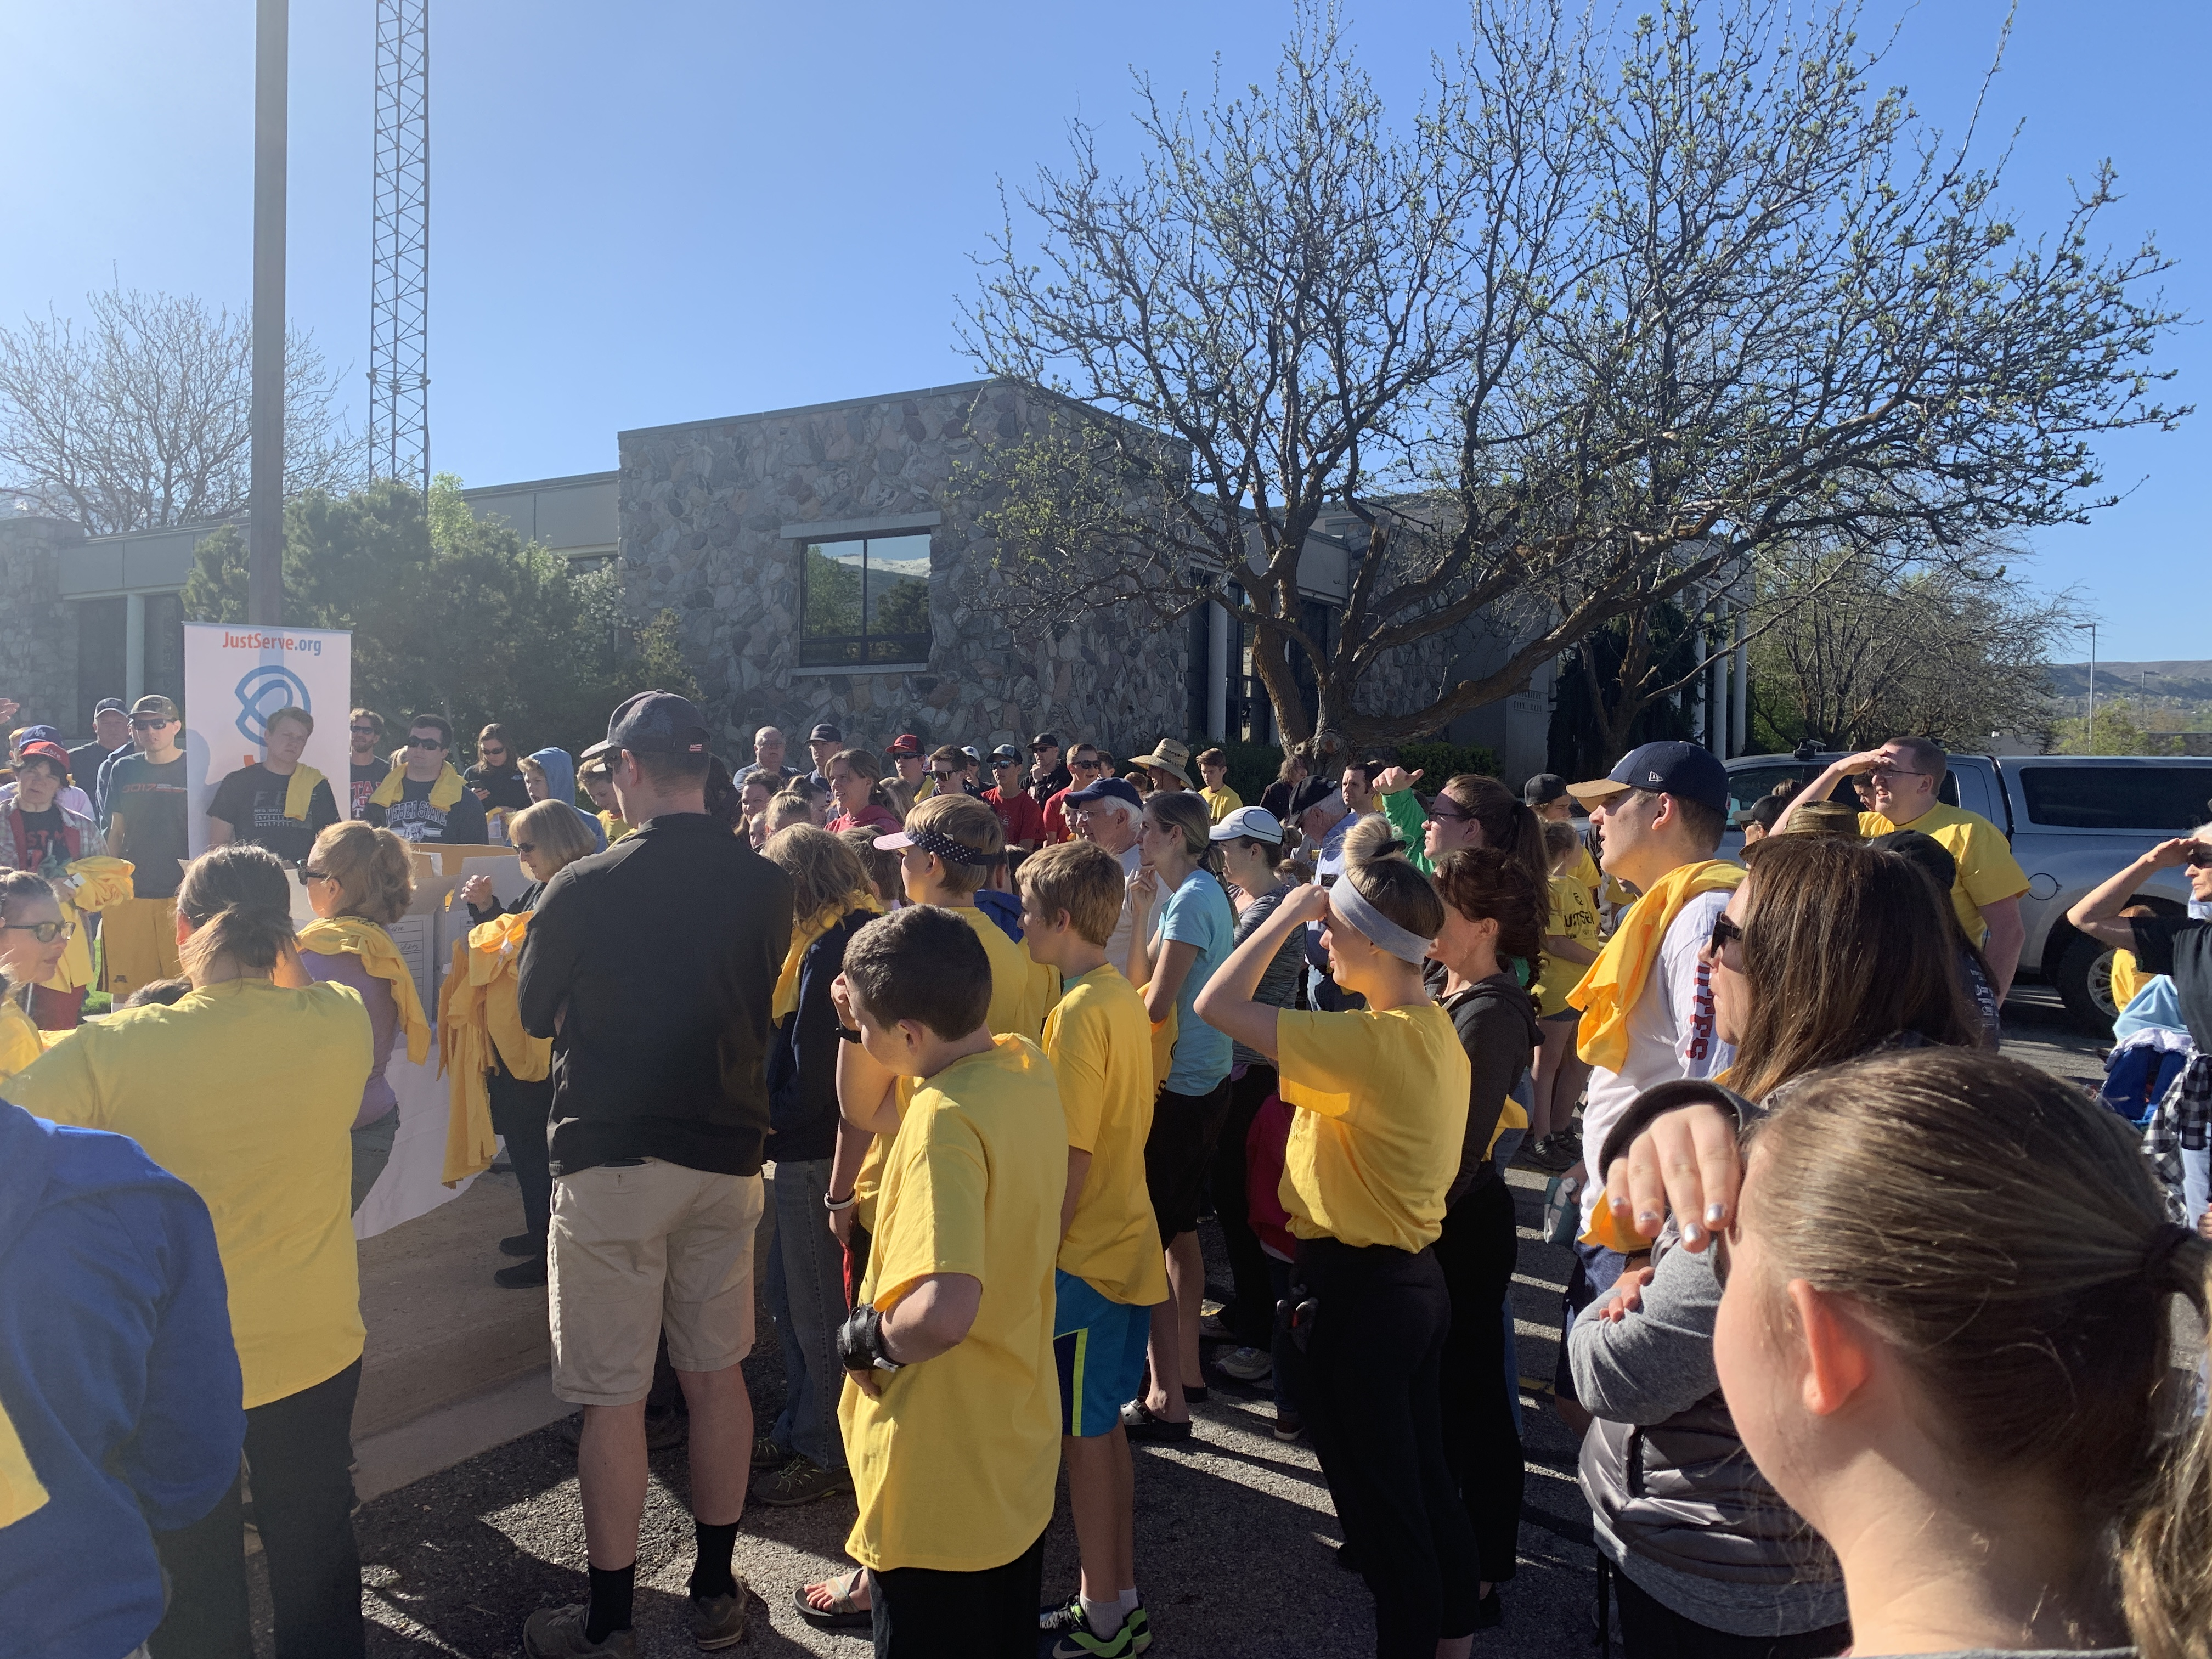 JustServe volunteers gather to help serve the Salt Lake community as part of the Salt Lake Bees/JustServe day of service on April 27.